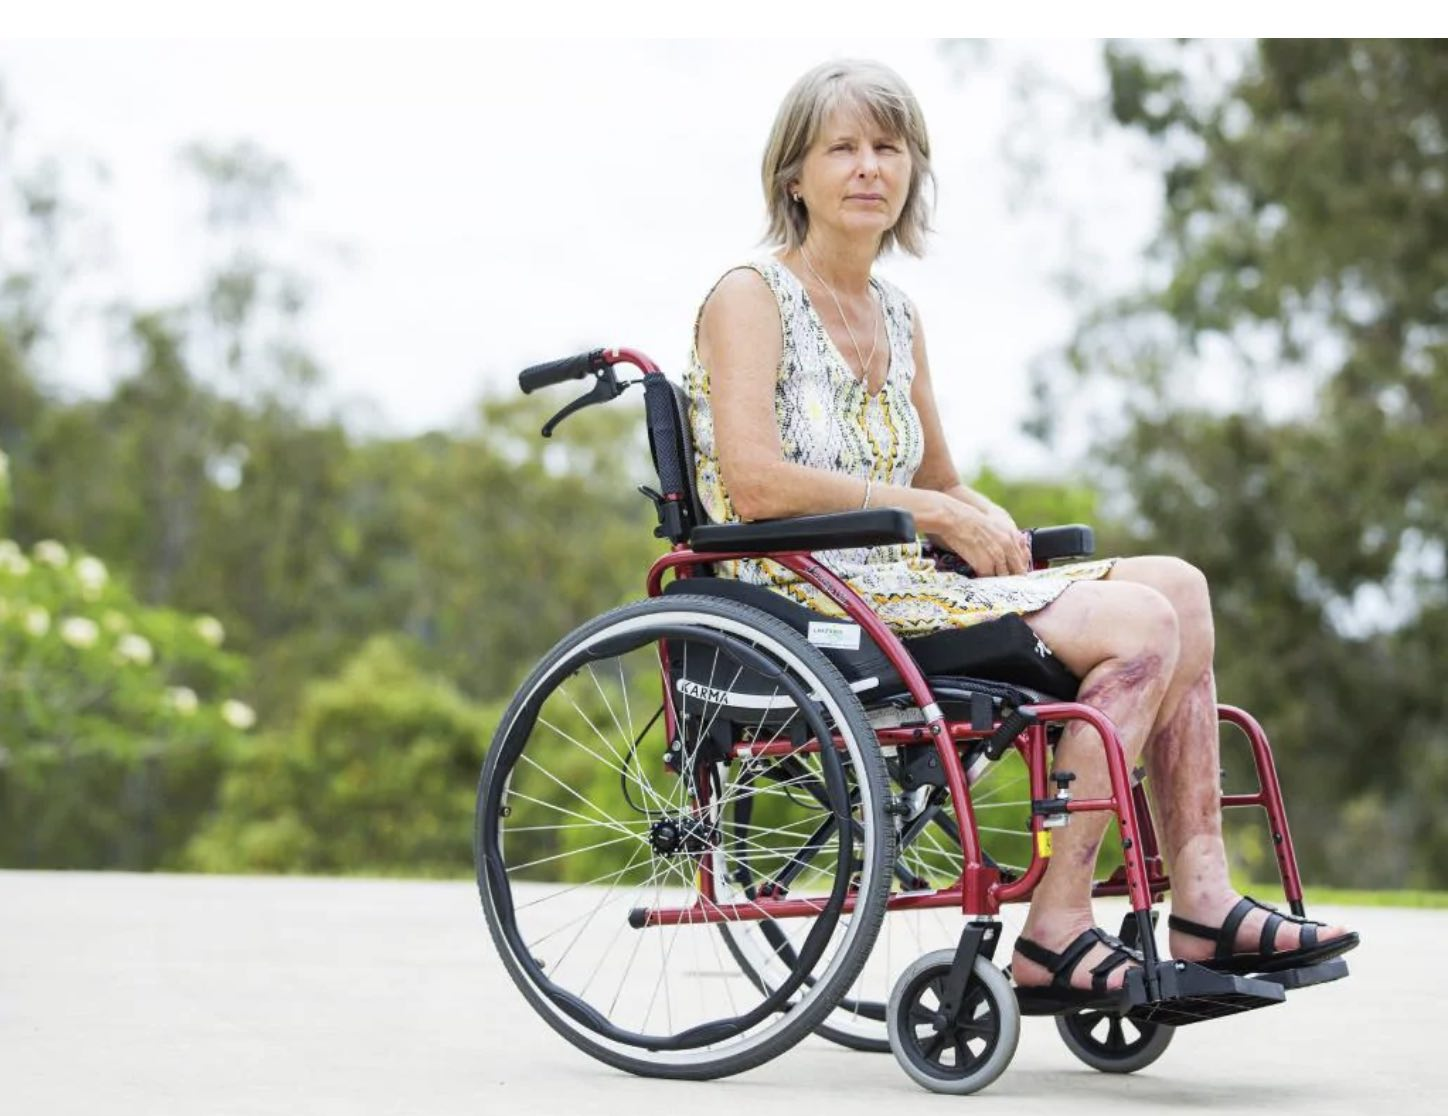 Sandy Bampton from Ninderry, who has suffered long-term damage to both of her legs when an out-of-control car hit her and killed her granddaughter Indy Armstrong in a Nambour Car Park. Picture: Lachie Millard